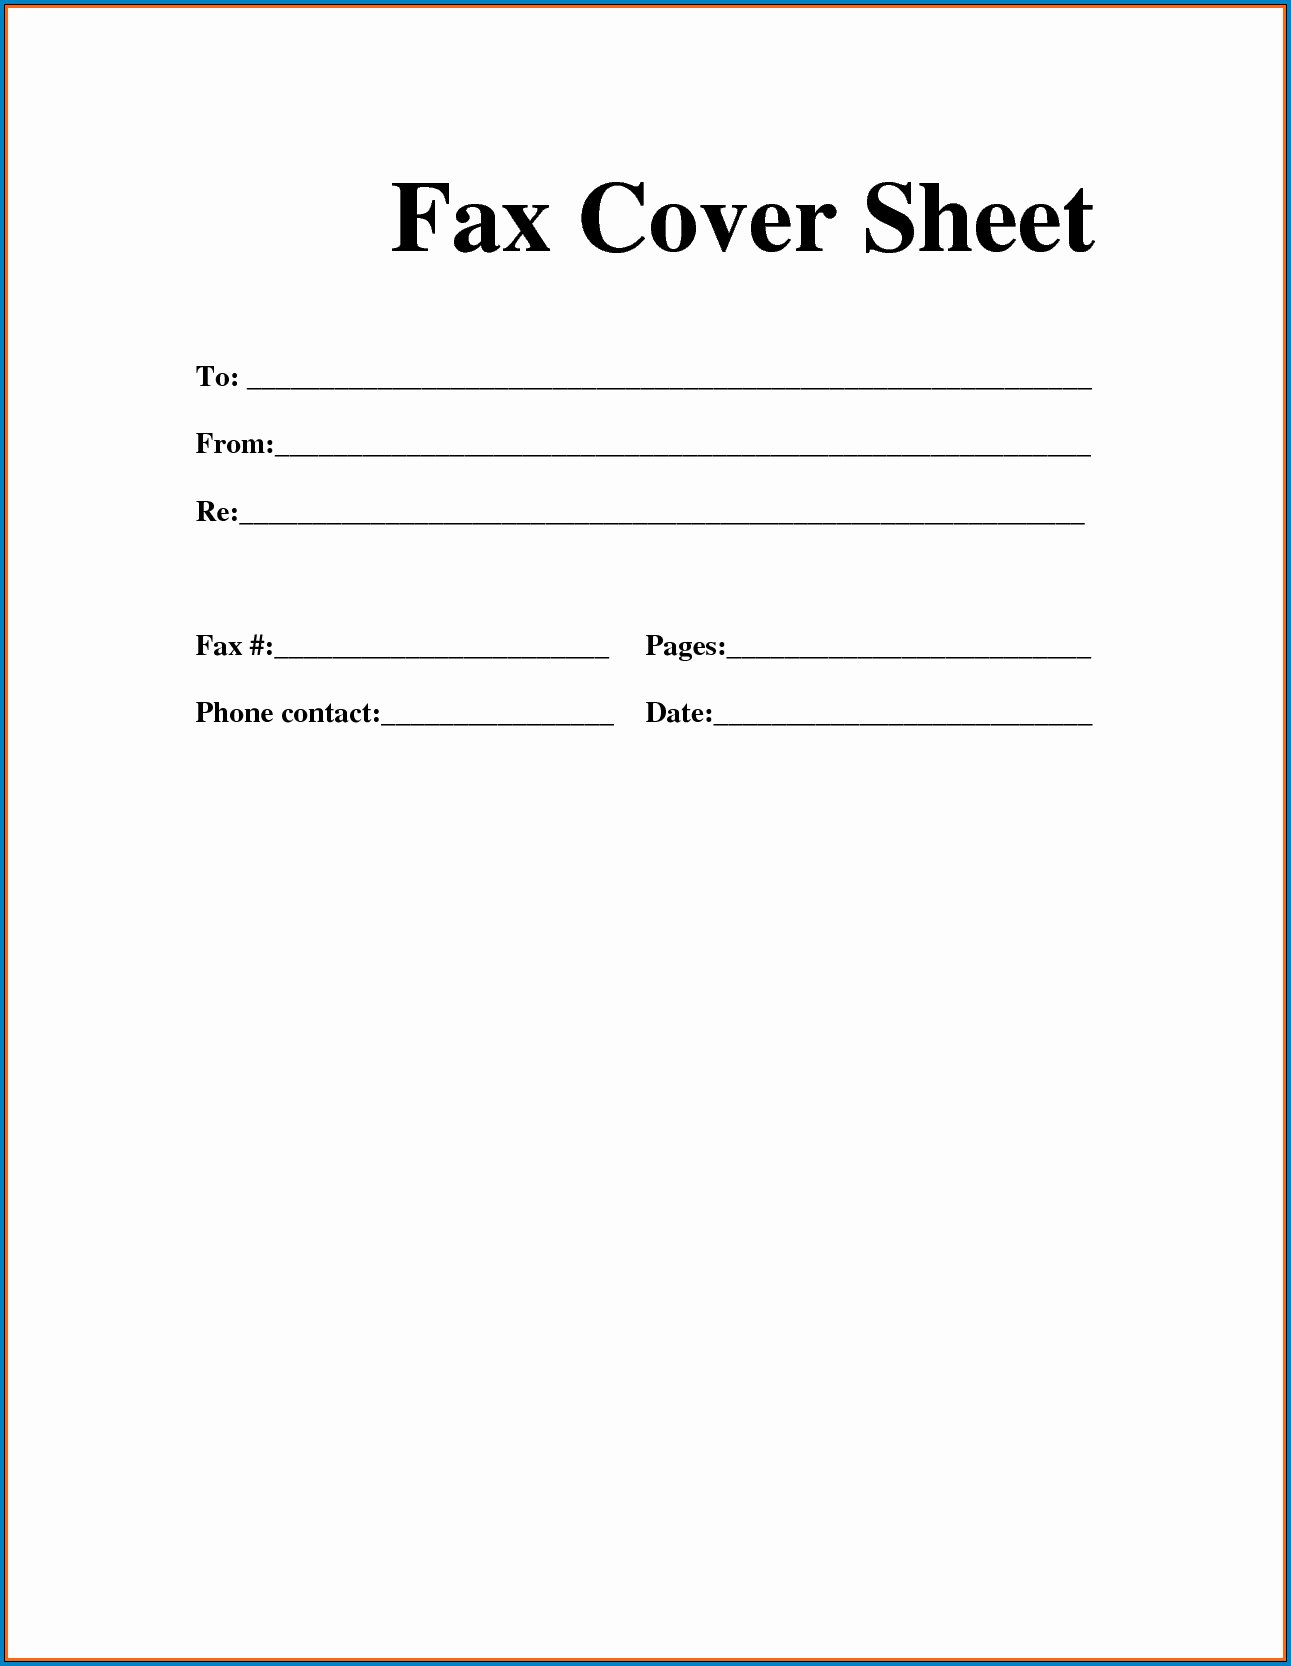 Blank Fax Cover Page Inspirational Free 20 Blank Fax Cover Sheet Sample 5795